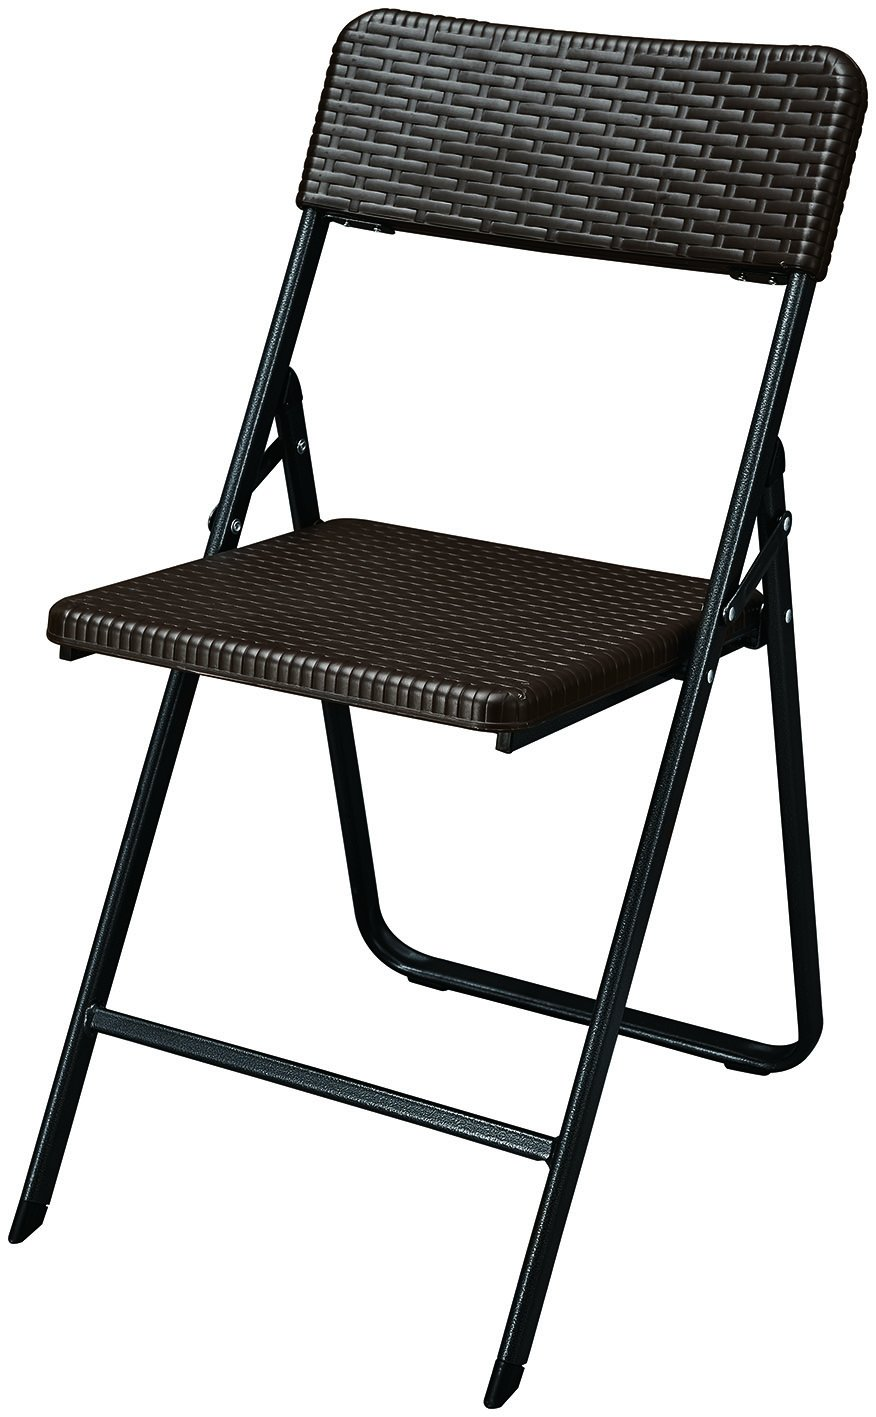 BrackenStyle Brown Folding Chair - Textured Plastic on Powder Coated Steel Frame - Ideal parties, events, patios - Outdoor Indoor Use